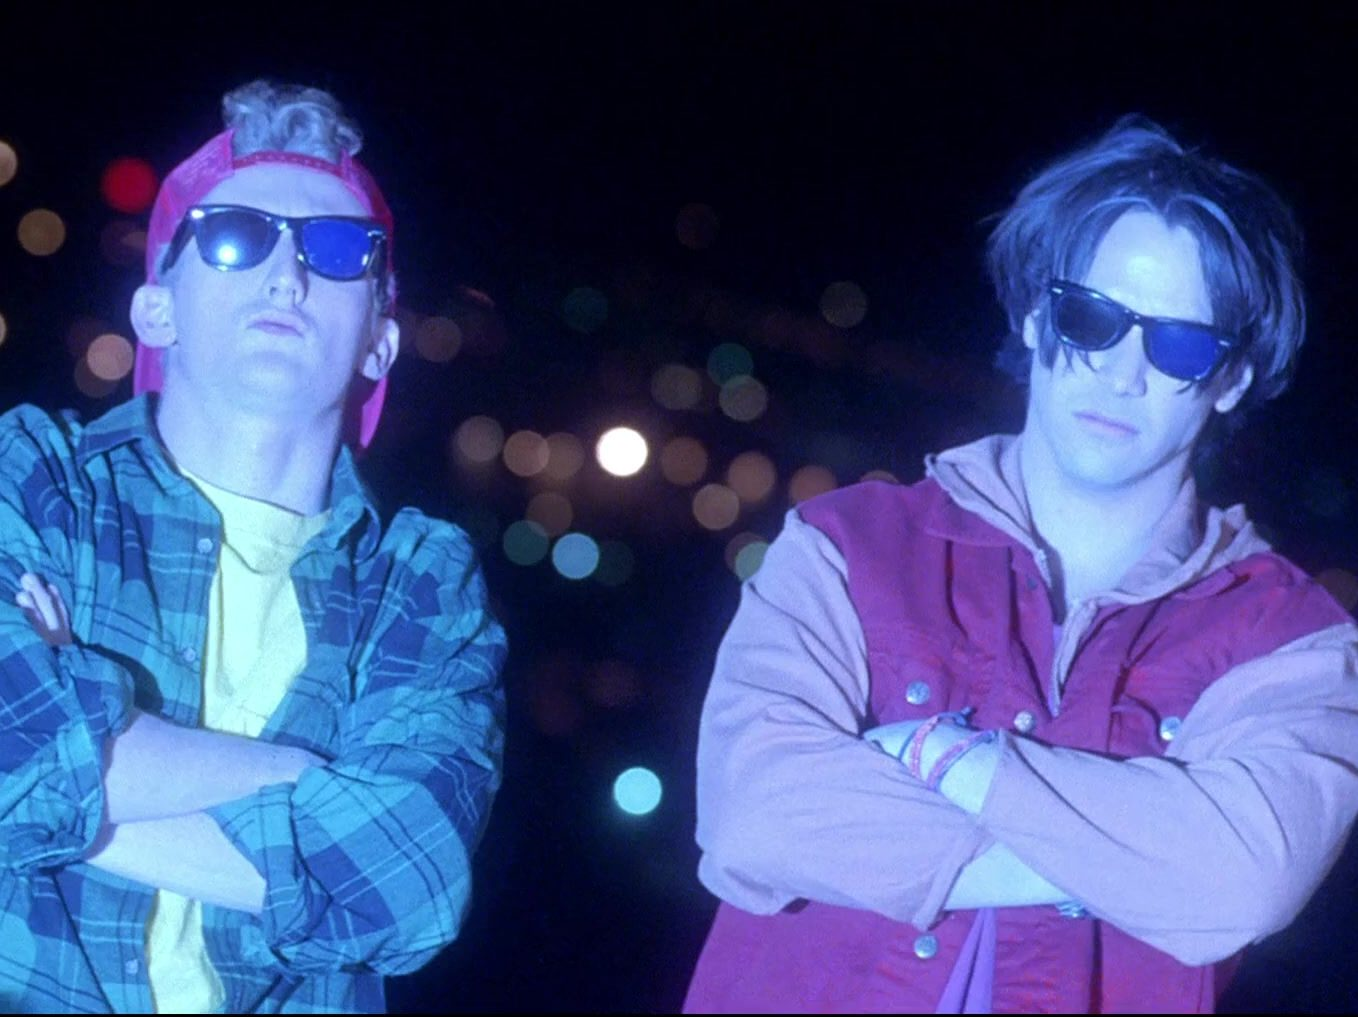 Ray Ban Wayfarer Sunglasses Worn by Keanu Reeves Alex Winter in Bill Teds Bogus Journey 6 e1606223714489 30 Most Triumphant Truths About Bill & Ted's Bogus Journey